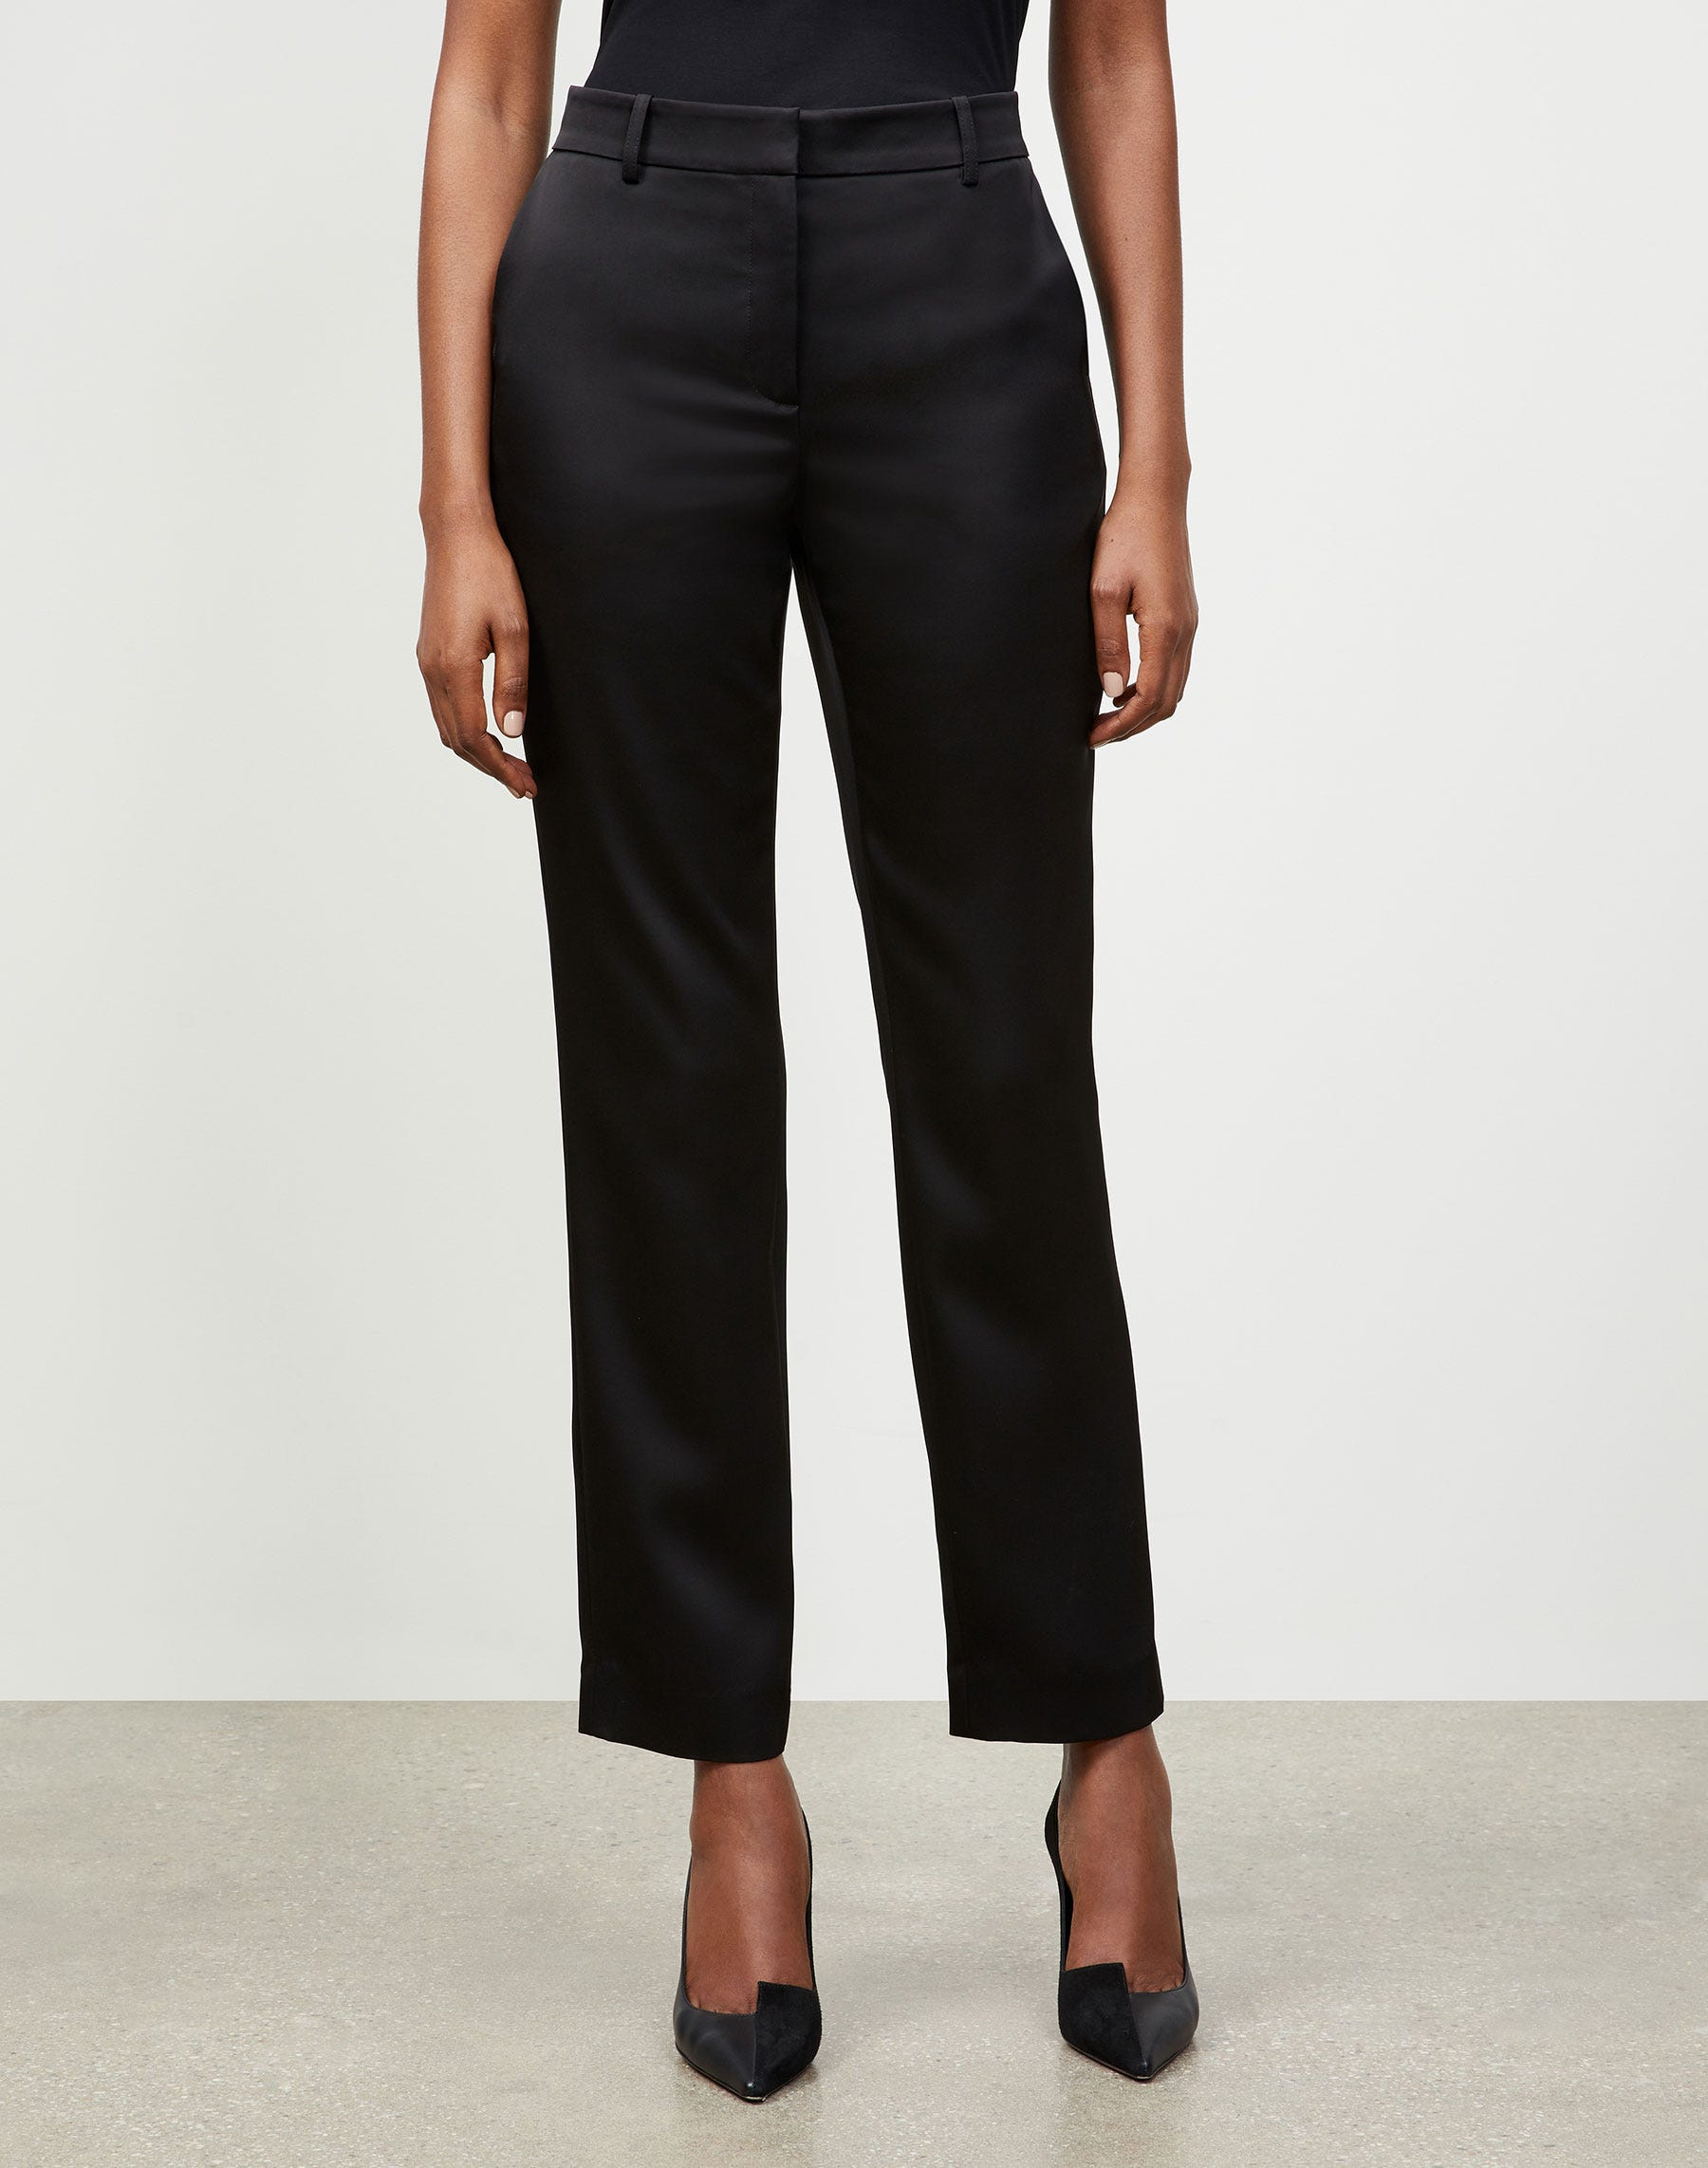 Lafayette 148 Pants RADIANT SATIN CLOTH CLINTON PANT